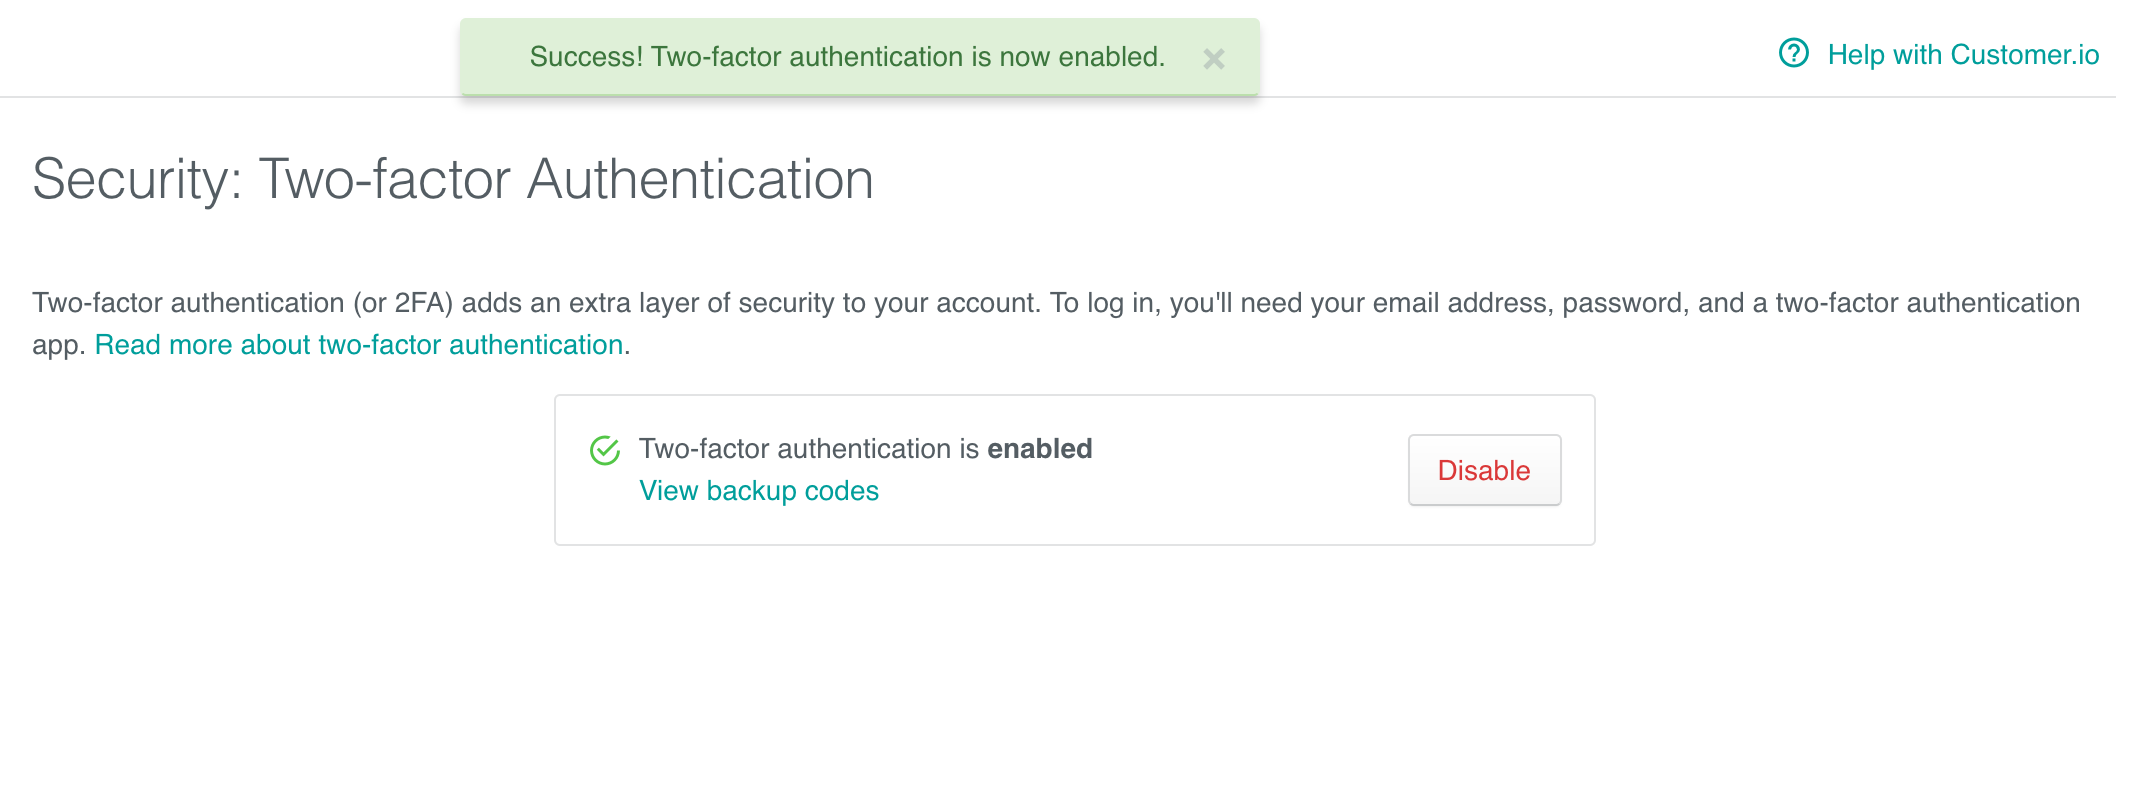 Two-factor authentication: Success!